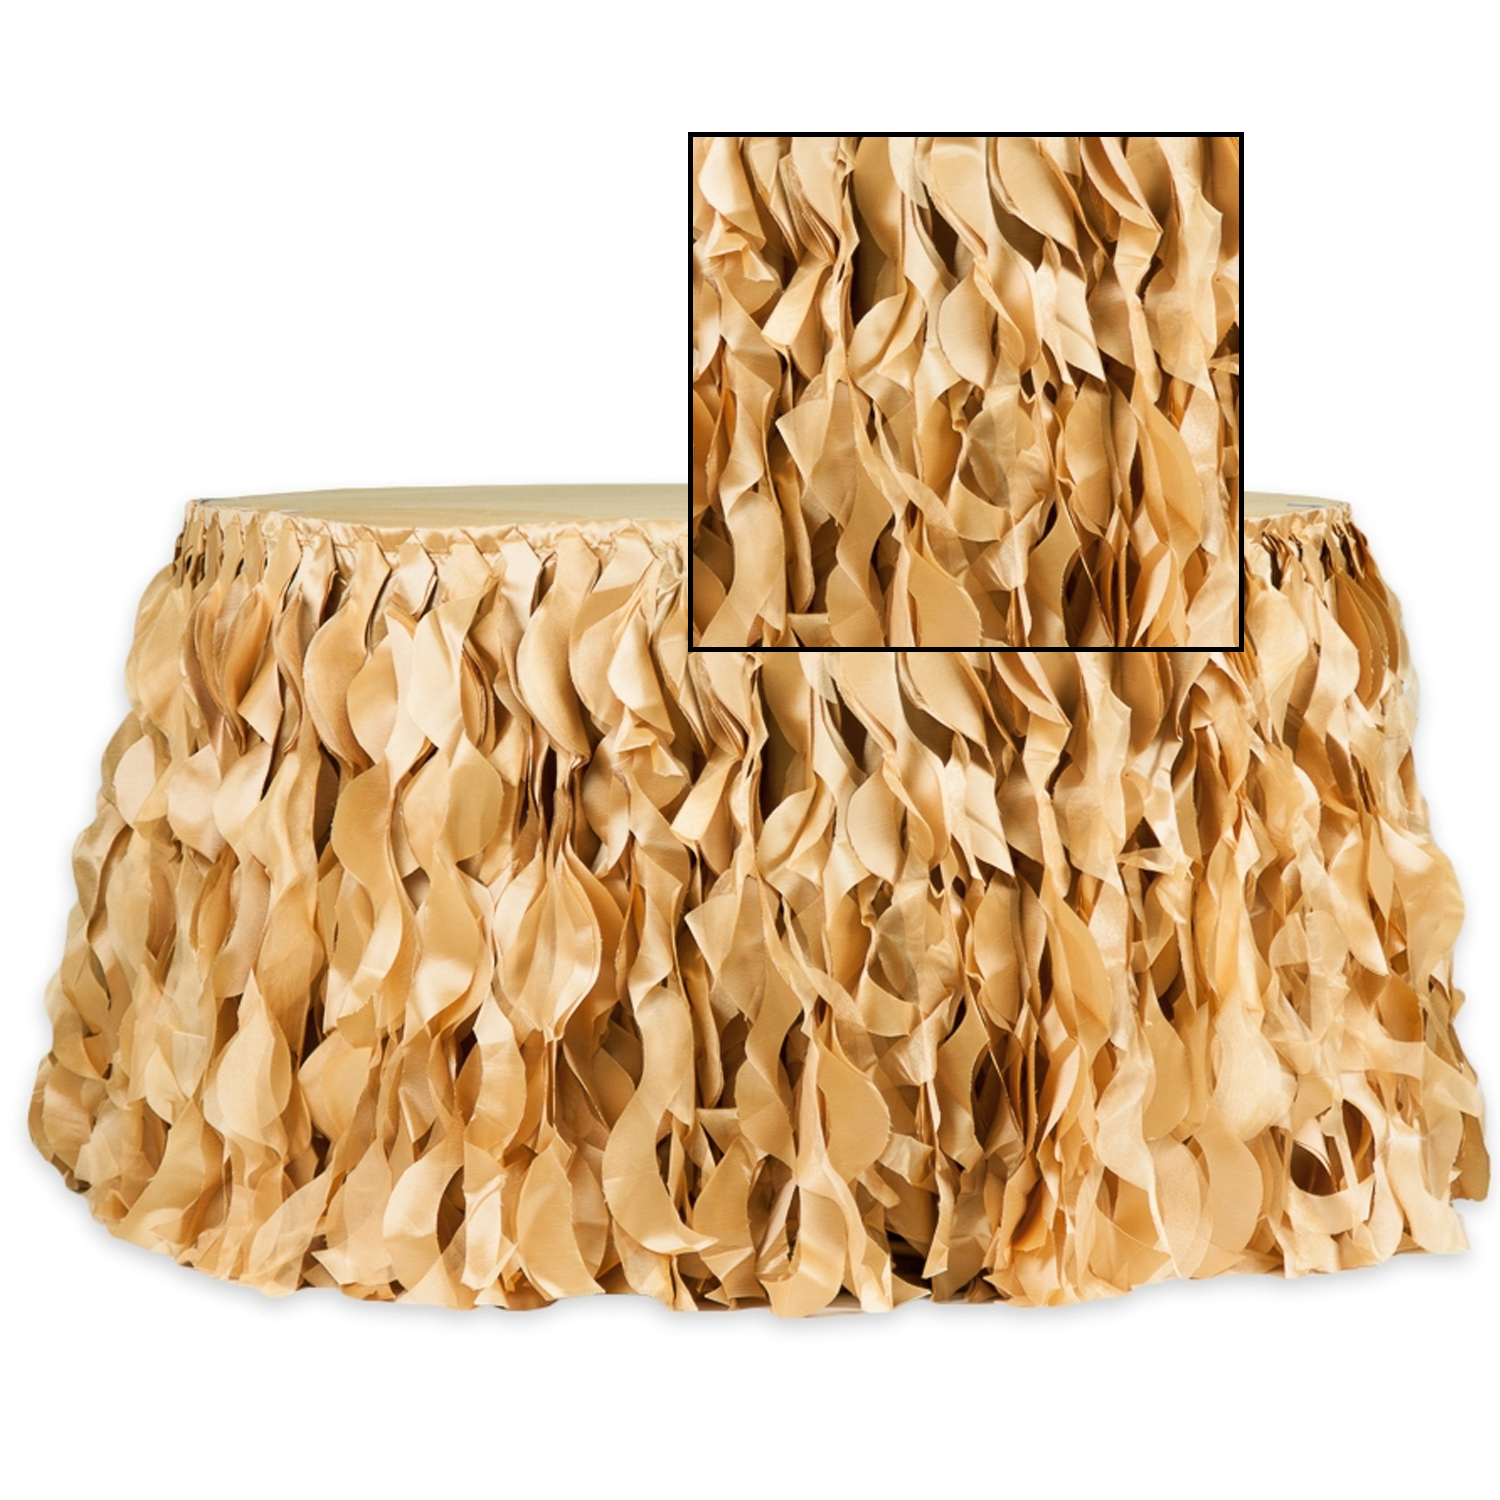 Spiral Taffeta Organza Table Skirt 14 Feet X 30 Inches High Gold